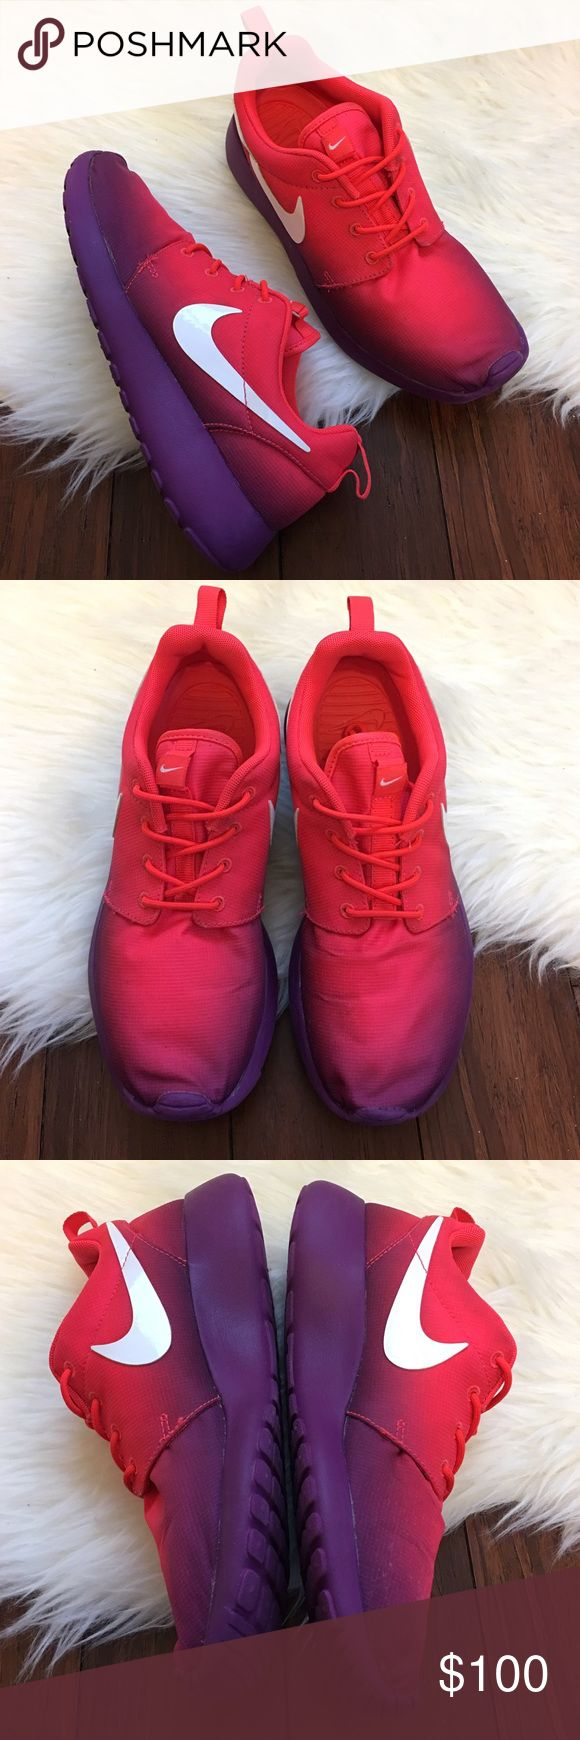 | Nike | Roshe Run Pink & Purple Ombré Sneakers In excellent condition. Worn one time. No noticeable flaws. Such an awesome and unique color! Nike Shoes Athletic Shoes